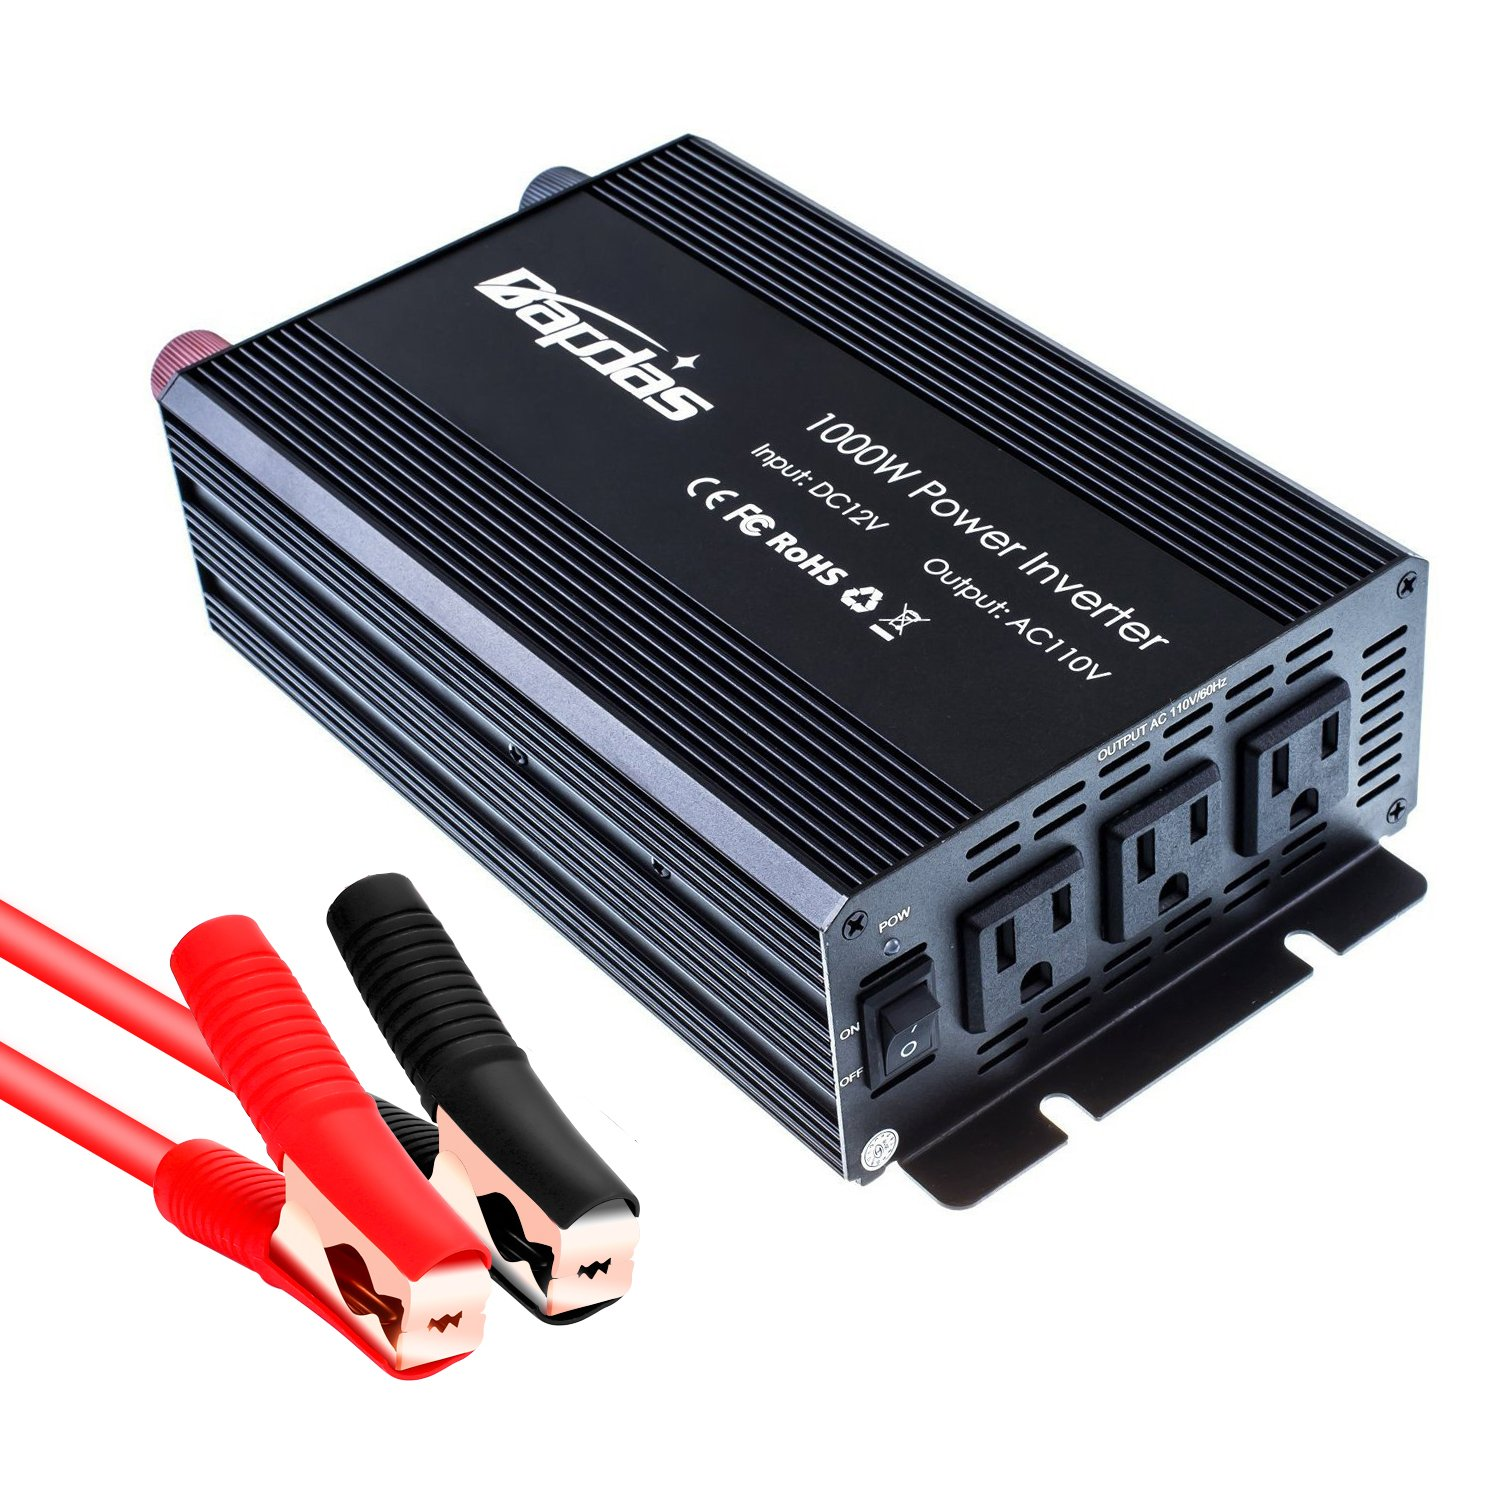 Bapdas 1000W Power Inverter DC 12V to 110V AC Converter with 3 AC Outlets for Household Appliances in case Emergency, Hurricane, Storm and Outage-Black